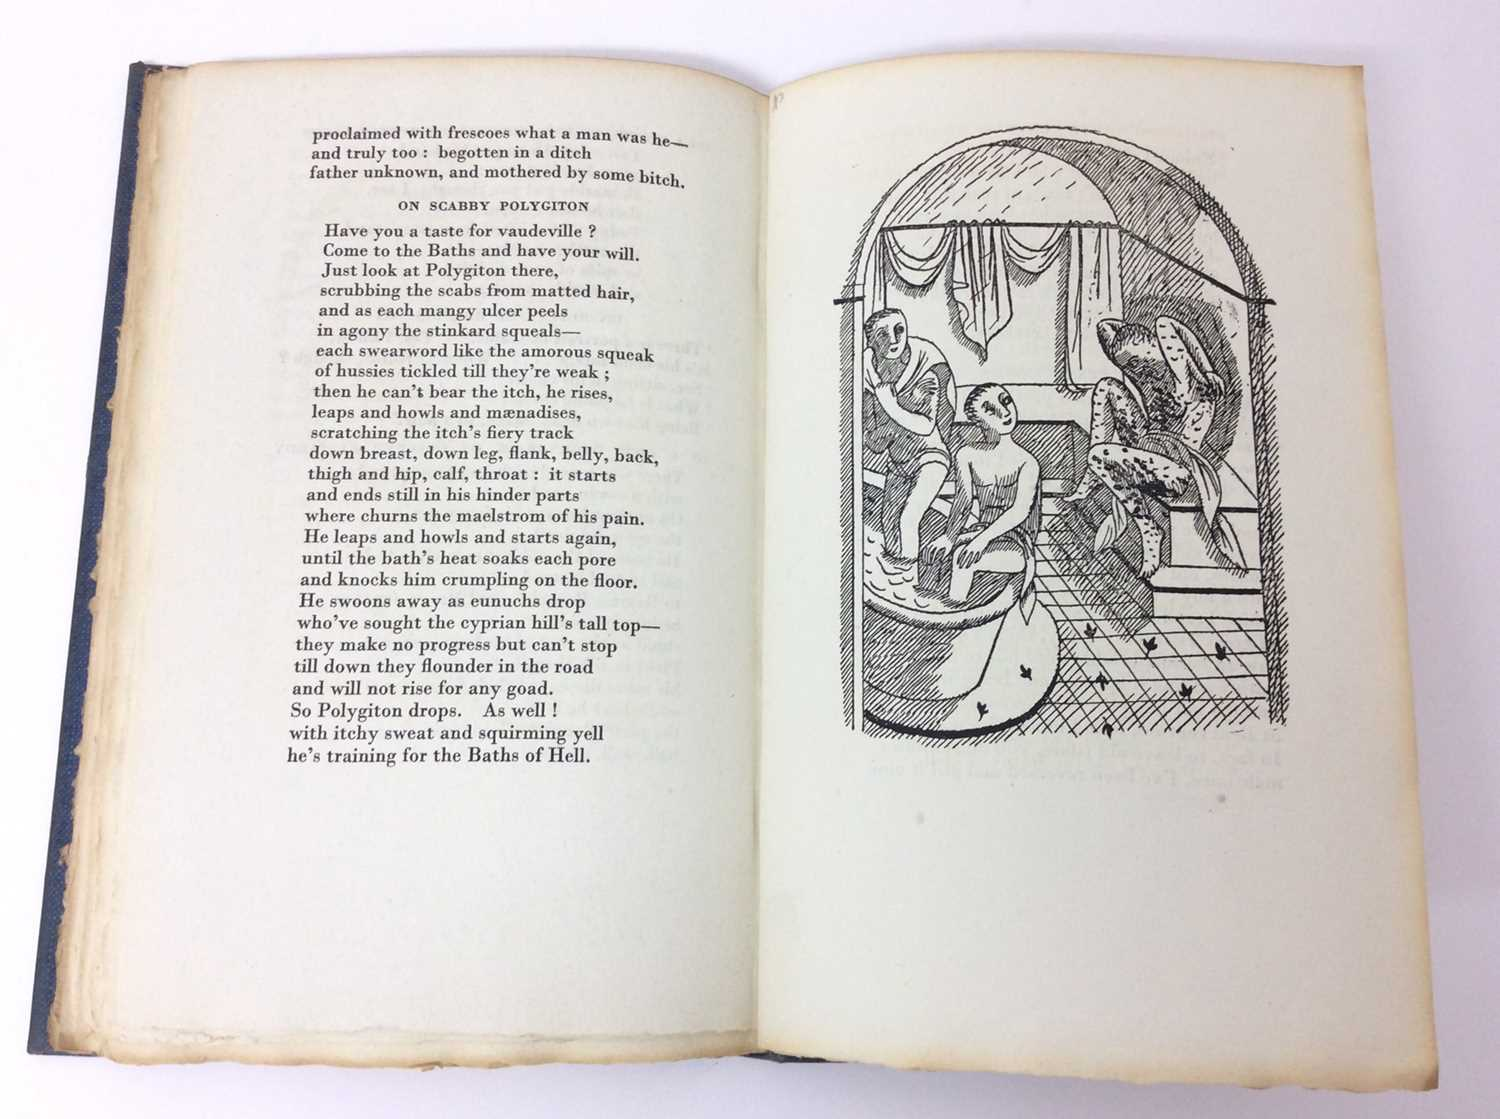 Patchwork Quilt. Poems by Decimus Magnus Ausonius, with illustrations by Edward Bawden, Franfrolico - Image 6 of 7